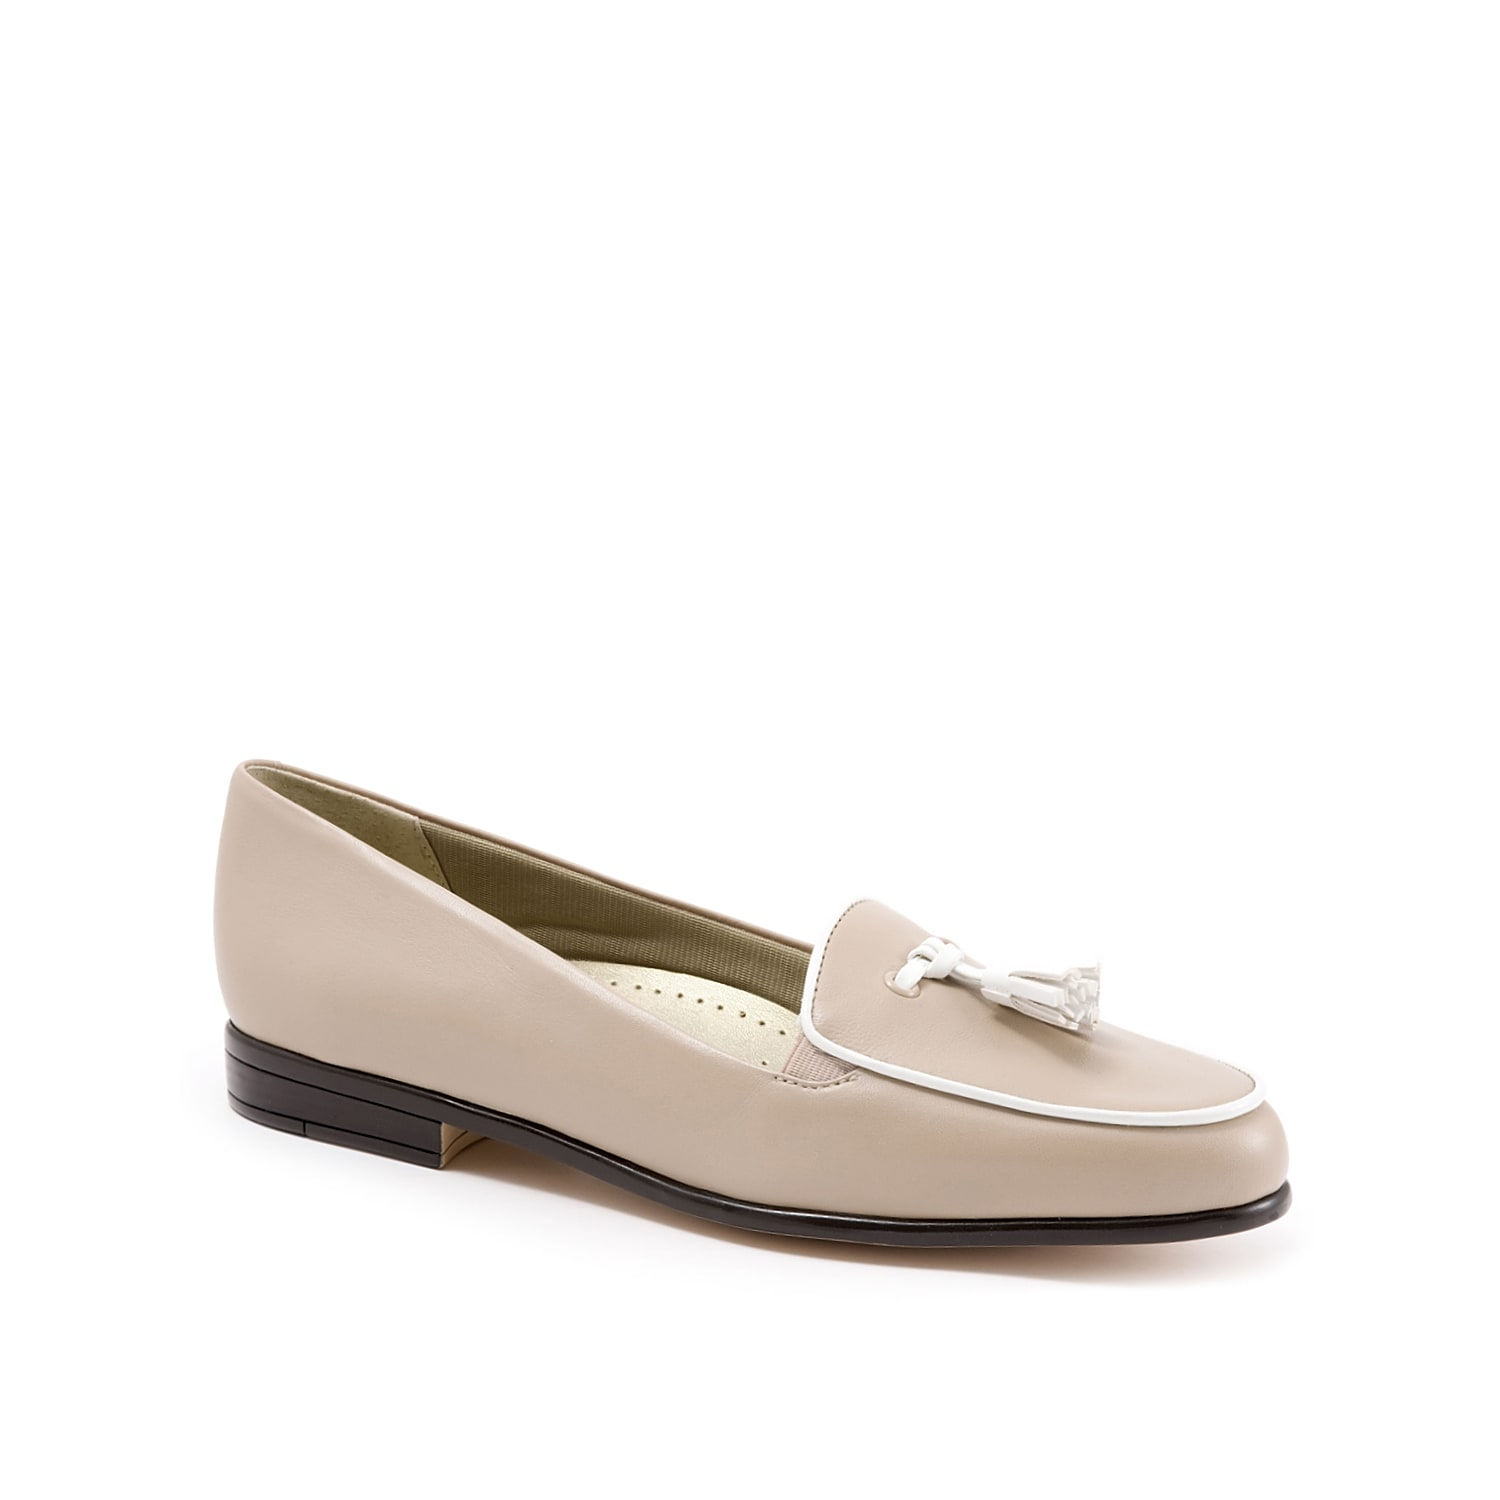 Go for classic sophistication with the Leana loafer from Trotters. With a chic tassel detail and round moccasin inspired toe, this slip-on is a timeless piece for your tailored look.